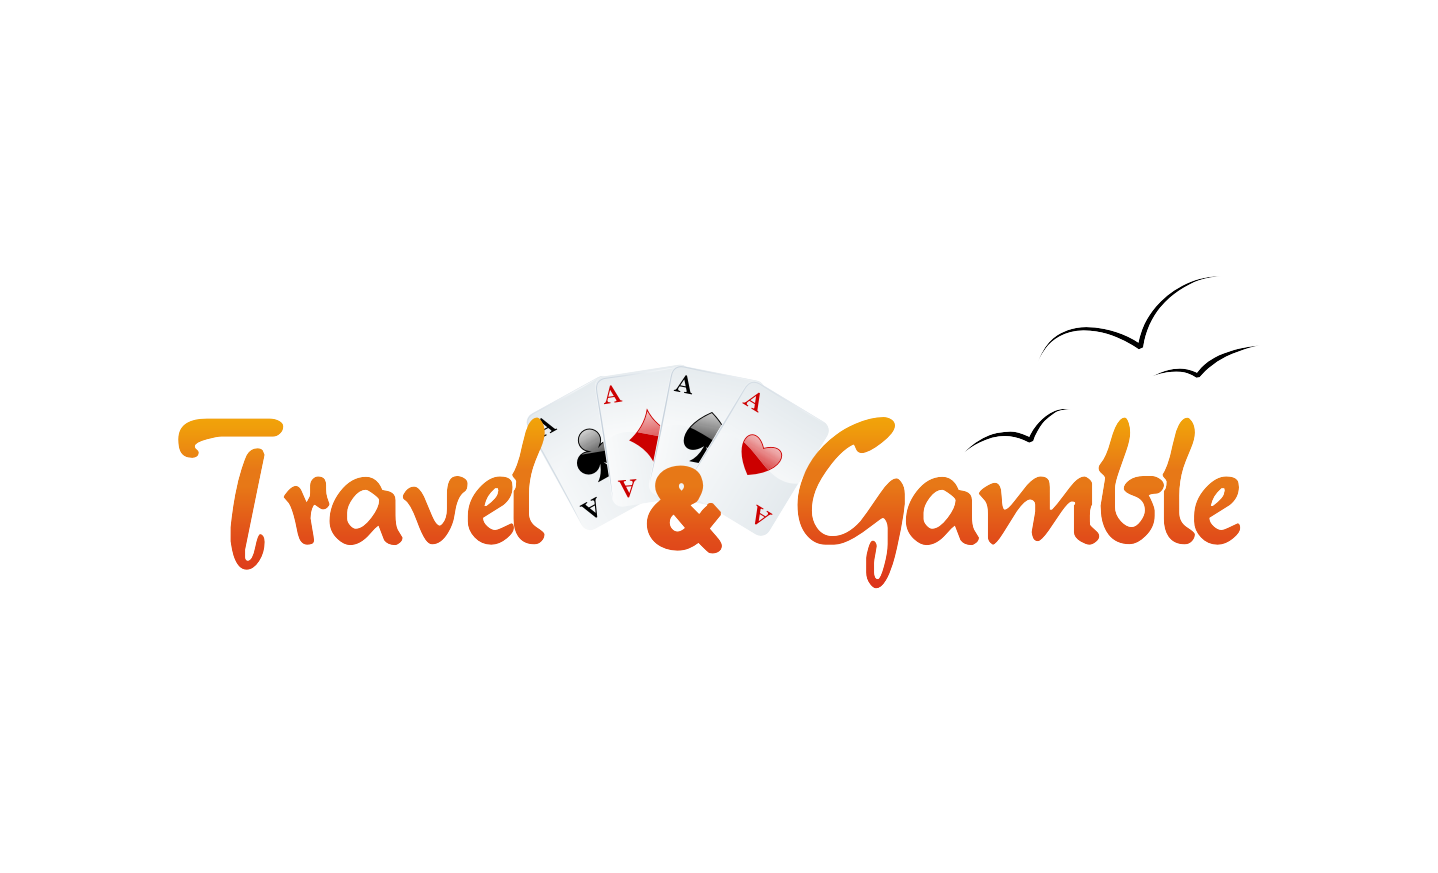 Travel & Gamble | Online Magazine about Gambling and Travelling